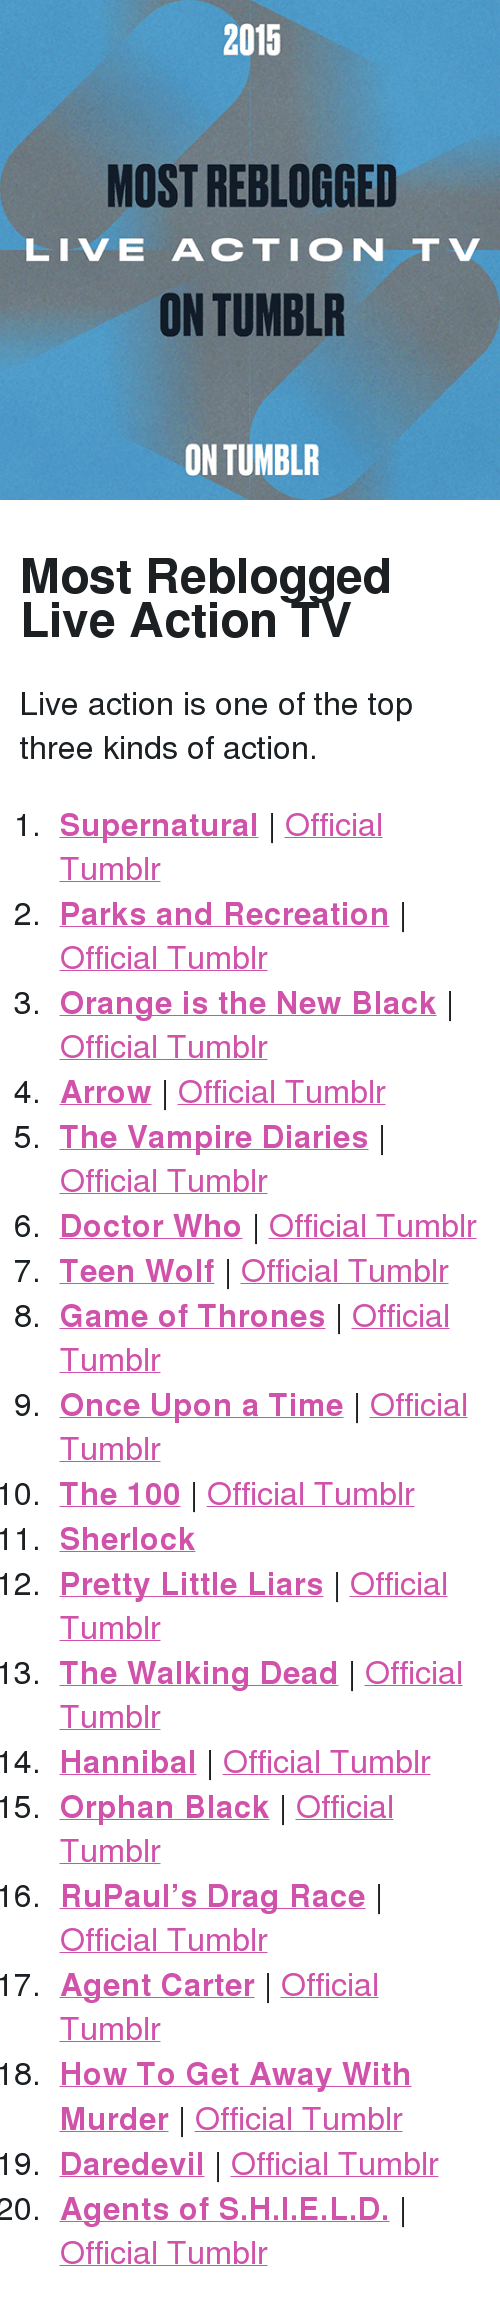 """Parks and Recreation: 2015  MOST REBLOGGED  LIVE ACTION TV  ON TUMBLR  ON TUMBLR <h2>Most Reblogged Live Action TV</h2><p>Live action is one of the top three kinds of action.<br/></p><ol><li><b><a href=""""http://www.tumblr.com/search/supernatural"""">Supernatural</a></b>  <a href=""""http://thecwspn.tumblr.com/"""">Official Tumblr</a></li>  <li><a href=""""http://www.tumblr.com/search/parks%20and%20recreation""""><b>Parks and Recreation</b></a>  <a href=""""http://nbcparksandrec.tumblr.com/"""">Official Tumblr</a></li>  <li><b><a href=""""http://www.tumblr.com/search/oitnb"""">Orange is the New Black</a></b>  <a href=""""http://oitnb.tumblr.com/"""">Official Tumblr</a></li>  <li><b><a href=""""http://www.tumblr.com/search/arrow"""">Arrow</a></b>  <a href=""""http://thecwarrow.tumblr.com/"""">Official Tumblr</a></li>  <li><b><a href=""""http://www.tumblr.com/search/the%20vampire%20diaries"""">The Vampire Diaries</a></b>  <a href=""""http://thecwtvd.tumblr.com/"""">Official Tumblr</a></li>  <li><b><a href=""""http://www.tumblr.com/search/doctor%20who"""">Doctor Who</a></b>  <a href=""""http://doctorwho.tumblr.com/"""">Official Tumblr</a></li>  <li><a href=""""http://www.tumblr.com/search/teen%20wolf""""><b>Teen Wolf</b></a>  <a href=""""http://teenwolf.tumblr.com/"""">Official Tumblr</a></li>  <li><a href=""""http://www.tumblr.com/search/game%20of%20thrones""""><b>Game of Thrones</b></a><b></b>  <a href=""""http://gameofthrones.tumblr.com/"""">Official Tumblr</a></li>  <li><b><a href=""""http://www.tumblr.com/search/ouat"""">Once Upon a Time</a></b>  <a href=""""http://onceabc.tumblr.com/"""">Official Tumblr</a></li>  <li><b><a href=""""http://www.tumblr.com/search/the%20100"""">The 100</a></b>  <a href=""""http://the100writers.tumblr.com/"""">Official Tumblr</a></li>  <li><b><a href=""""http://www.tumblr.com/search/sherlock"""">Sherlock</a></b></li>  <li><b><a href=""""http://www.tumblr.com/search/pretty%20little%20liars"""">Pretty Little Liars</a></b>  <a href=""""http://prettylittleliars.tumblr.com/"""">Official Tumblr</a></li>  <li><b><a href=""""http://www.tumblr.com/search/the%20walking%20dead"""">The """